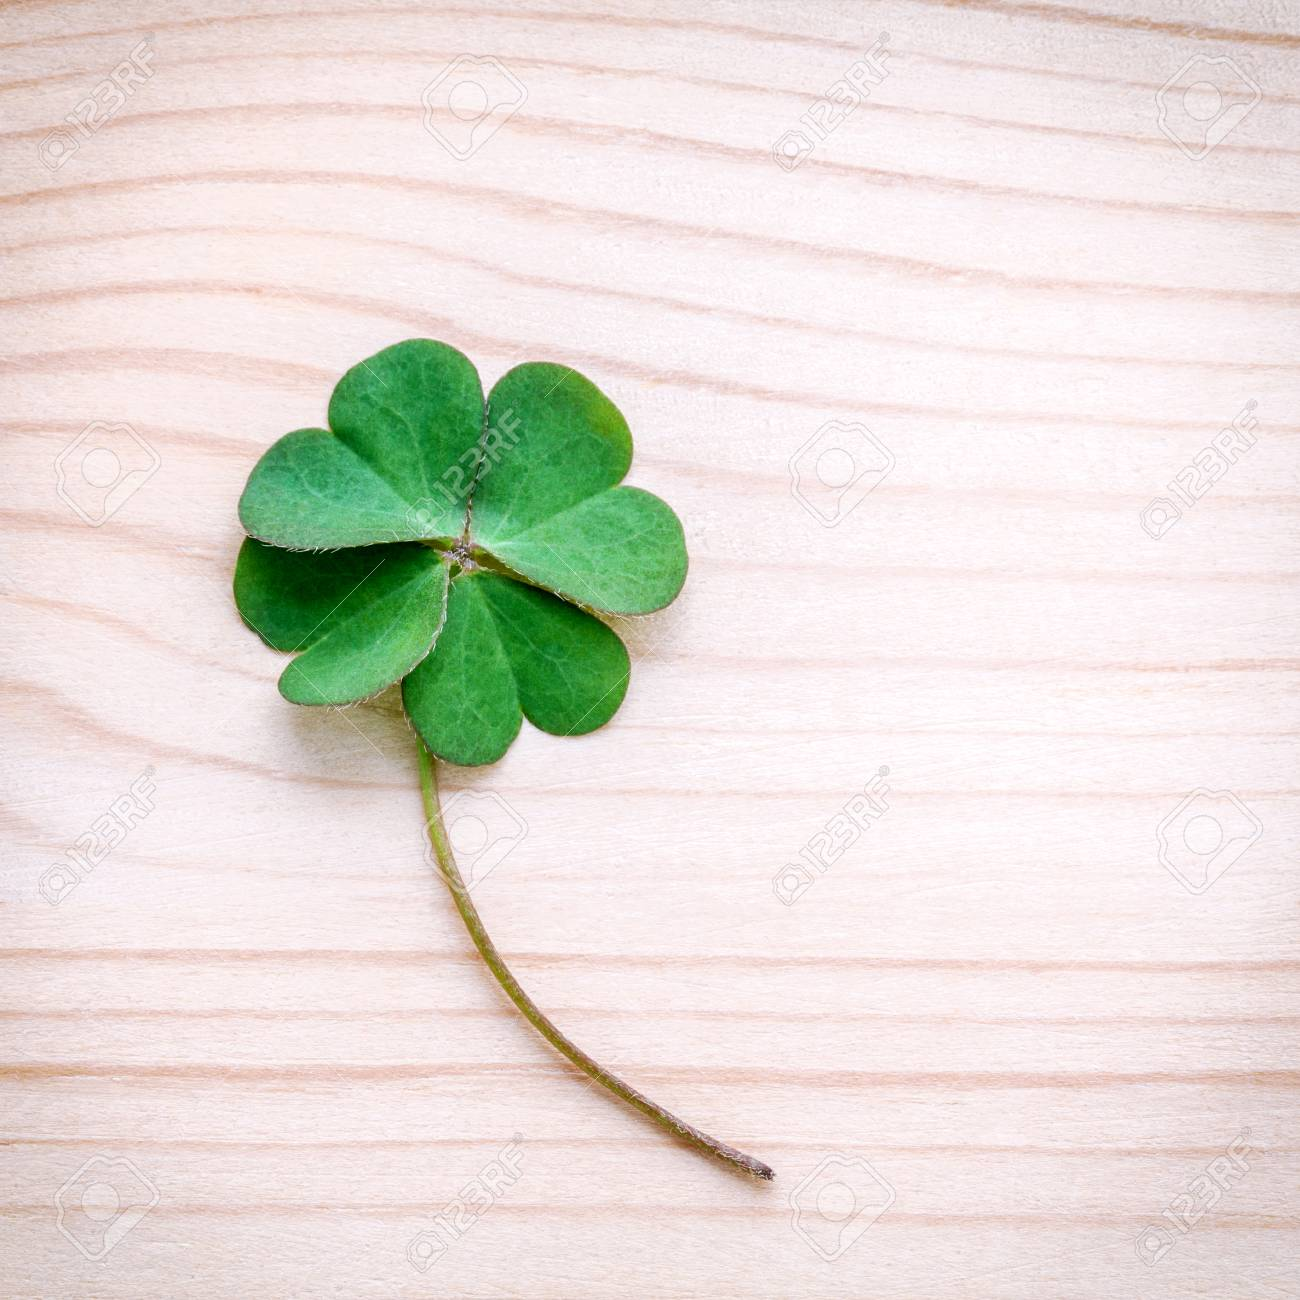 Clovers Leaves On Stone E Symbolic Of Four Leaf Clover The